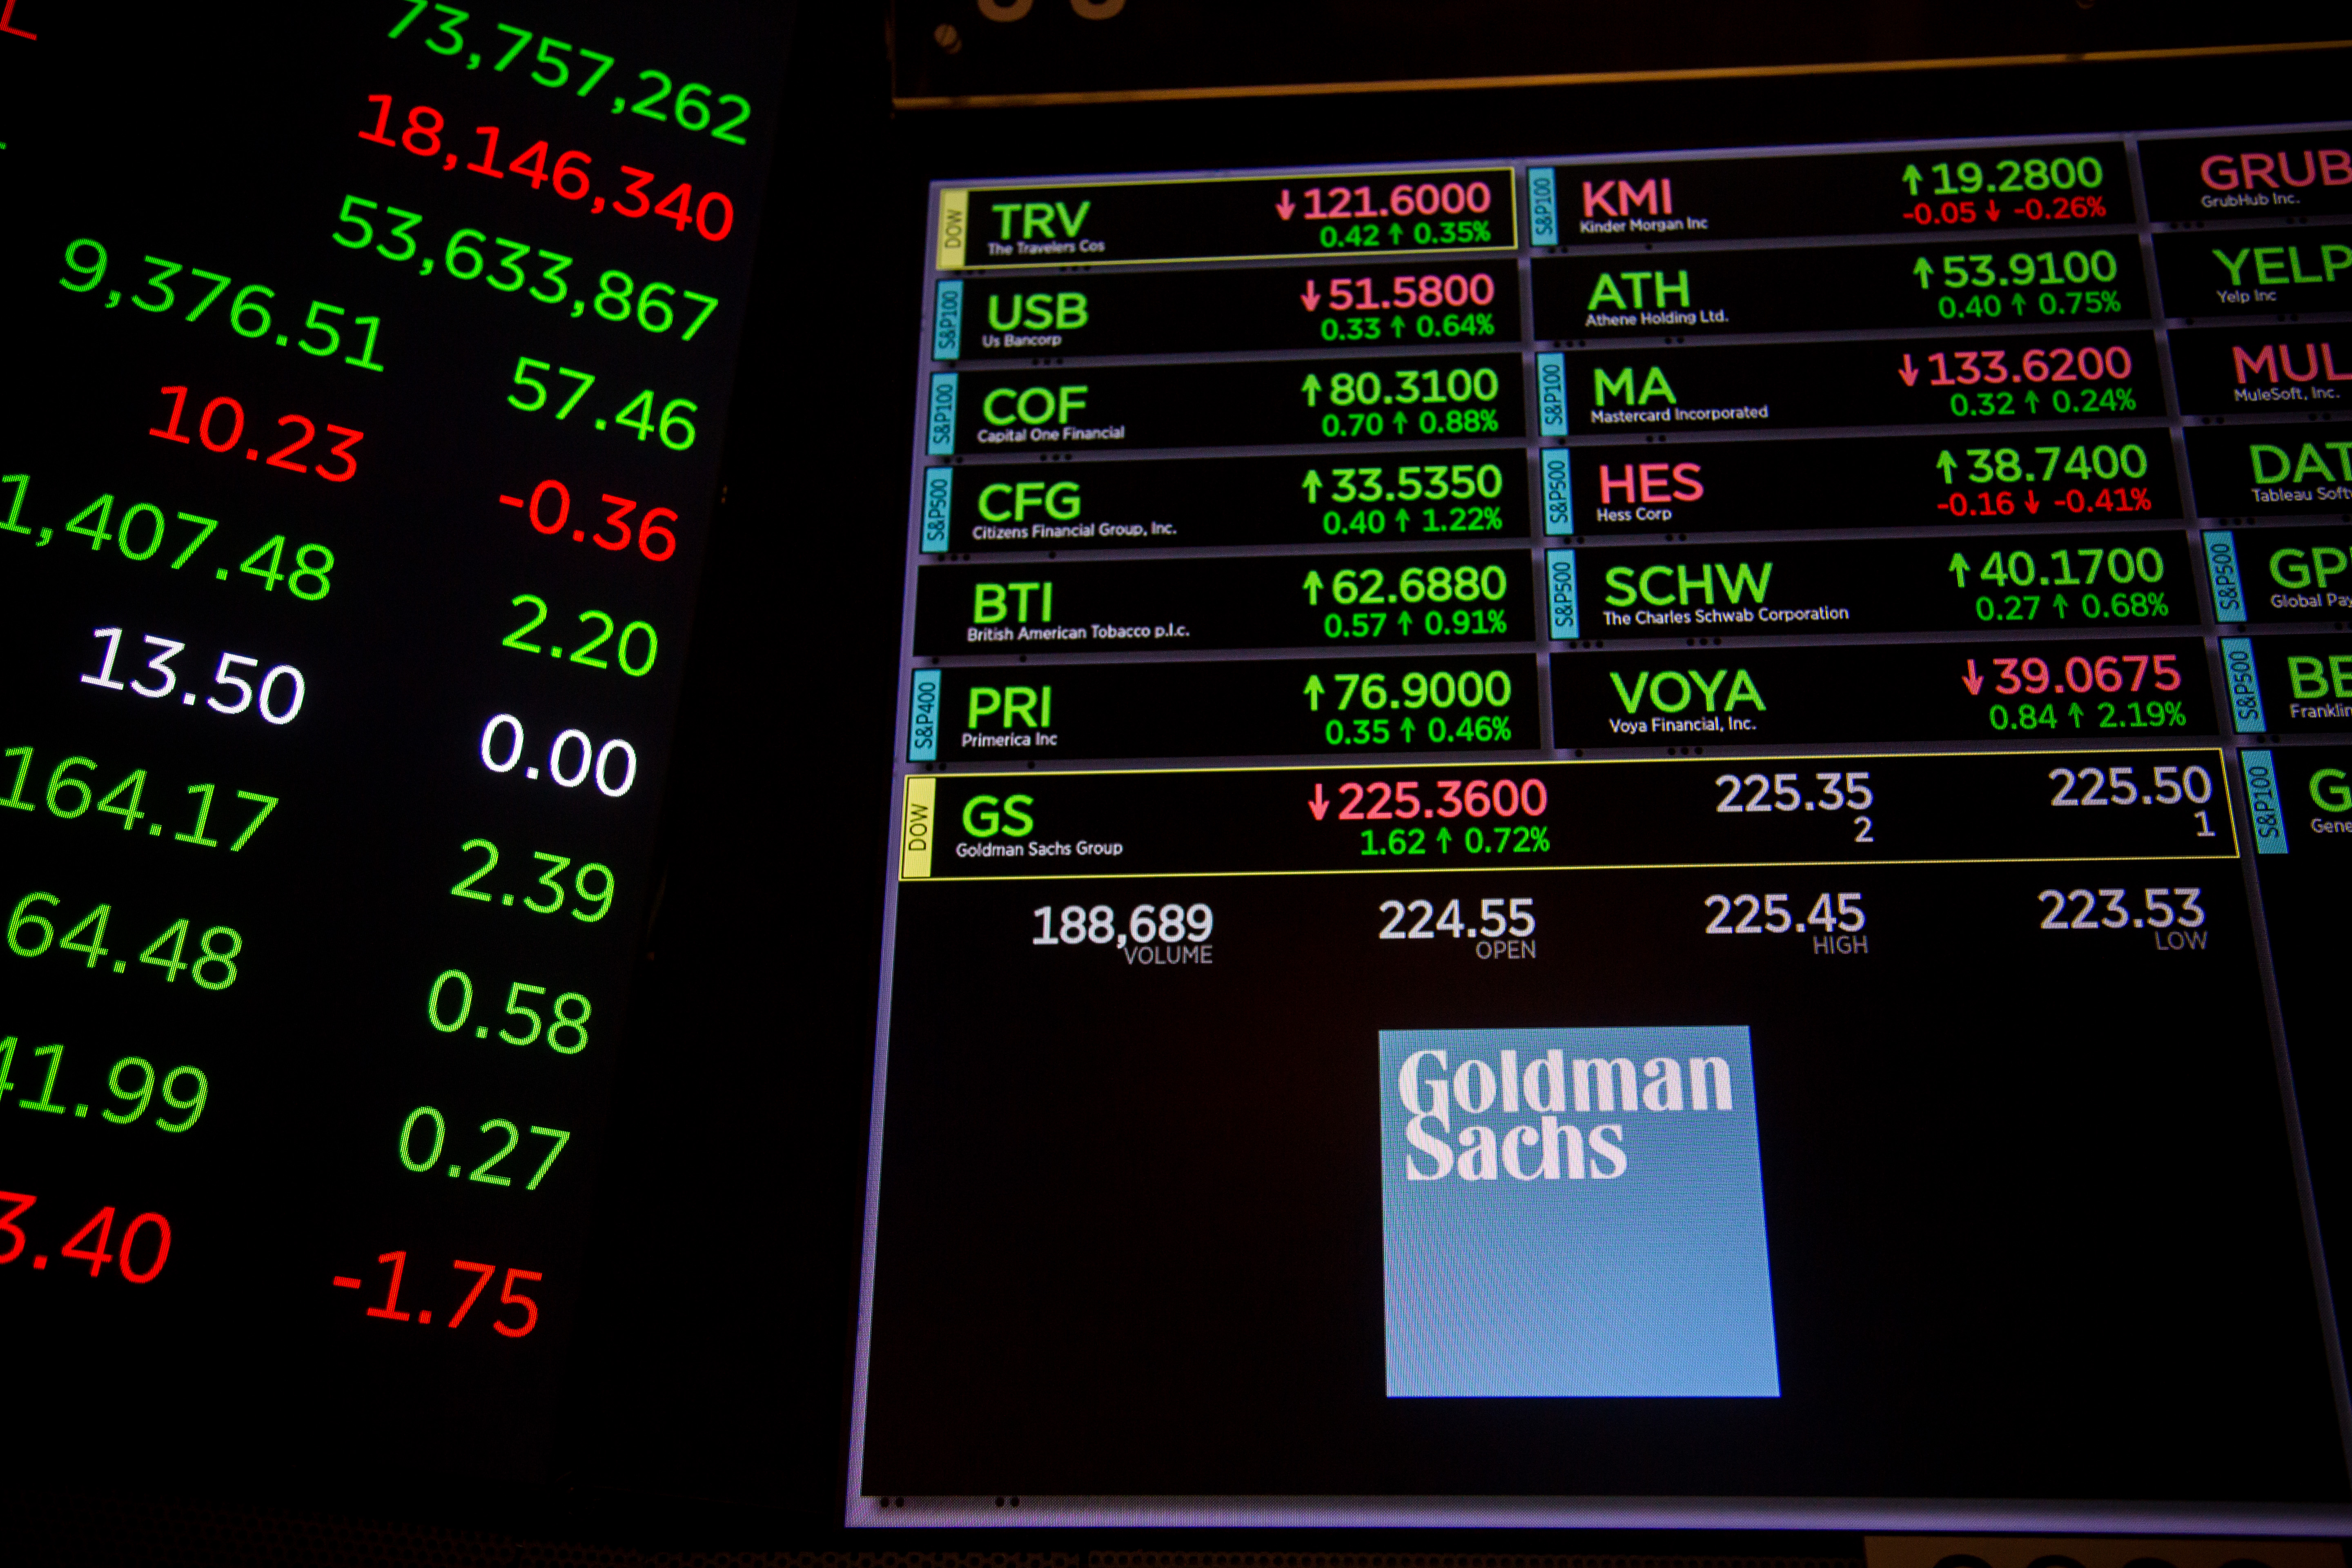 Goldman Sachs 4q earnings: Stock price falls after first loss since 2011